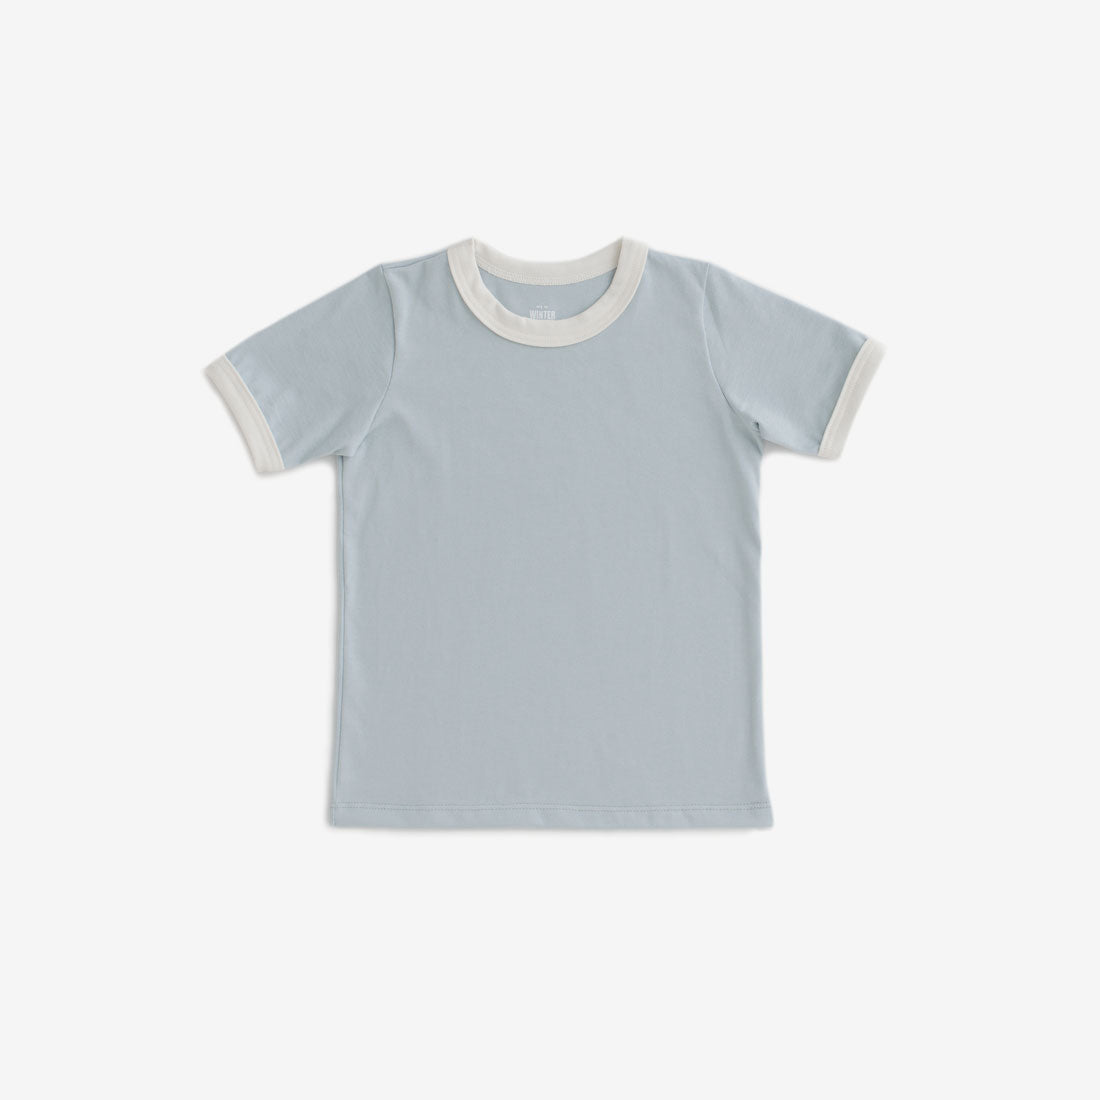 Organic Jersey Ringer Tee - Pale Blue